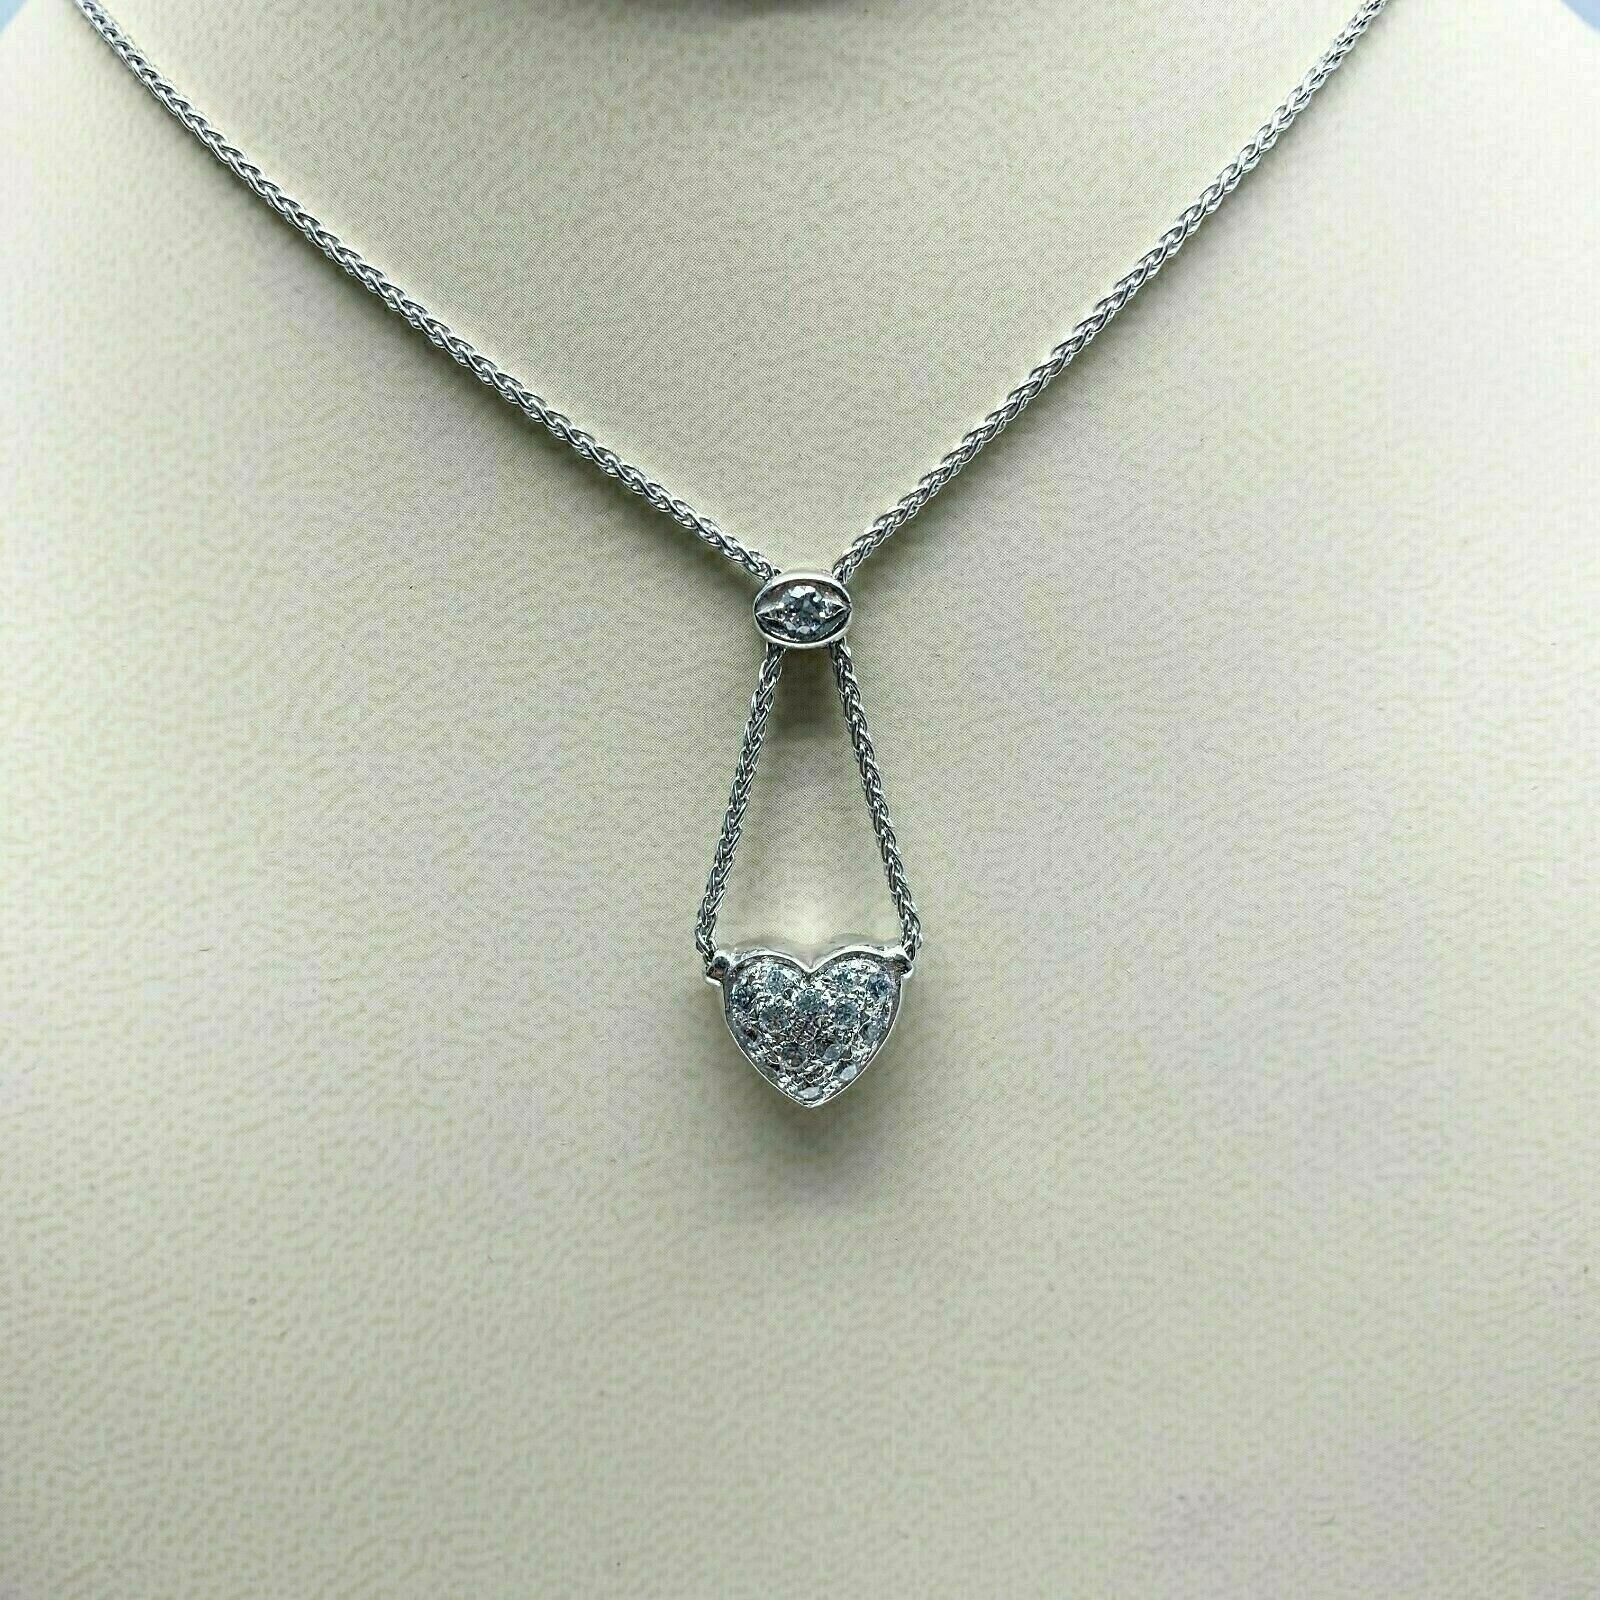 0.60 Carats Micro Pave Diamond Heart Necklace 14K Gold w 14K Chain Italian Made